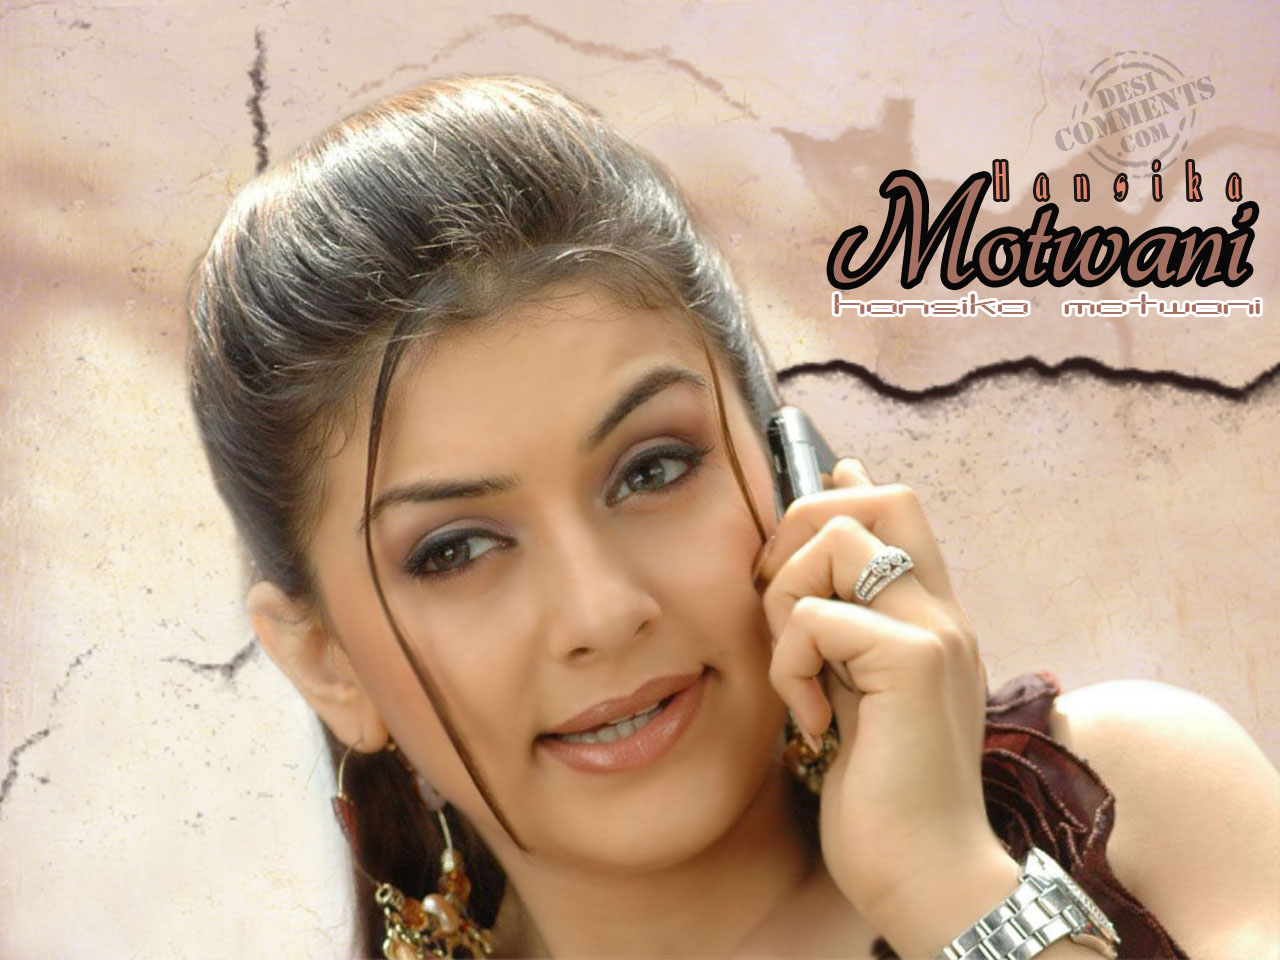 Hansika Motwani - Believe In